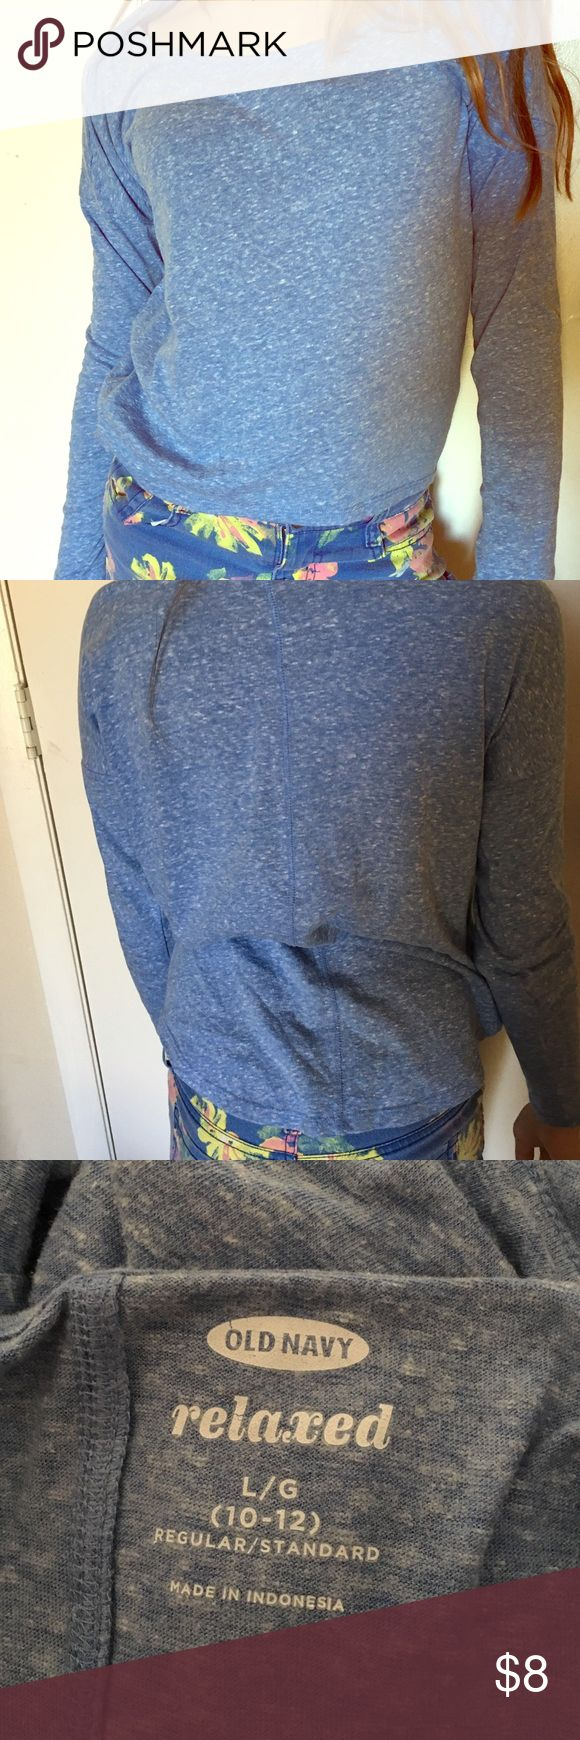 Old navy long sleeve top NWOT Old Navy Shirts & Tops Tees - Long Sleeve